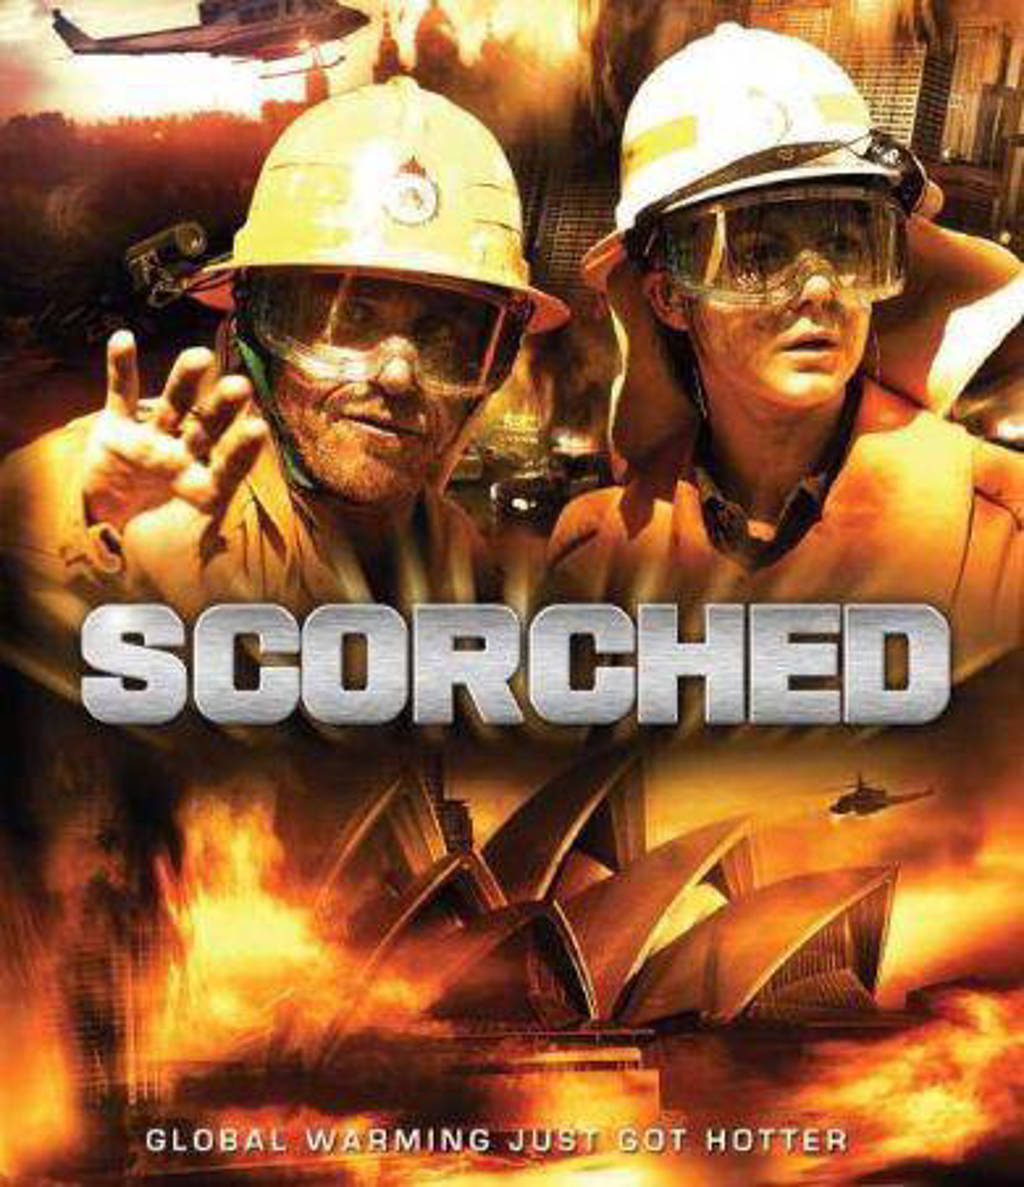 Scorched (Blu-ray)